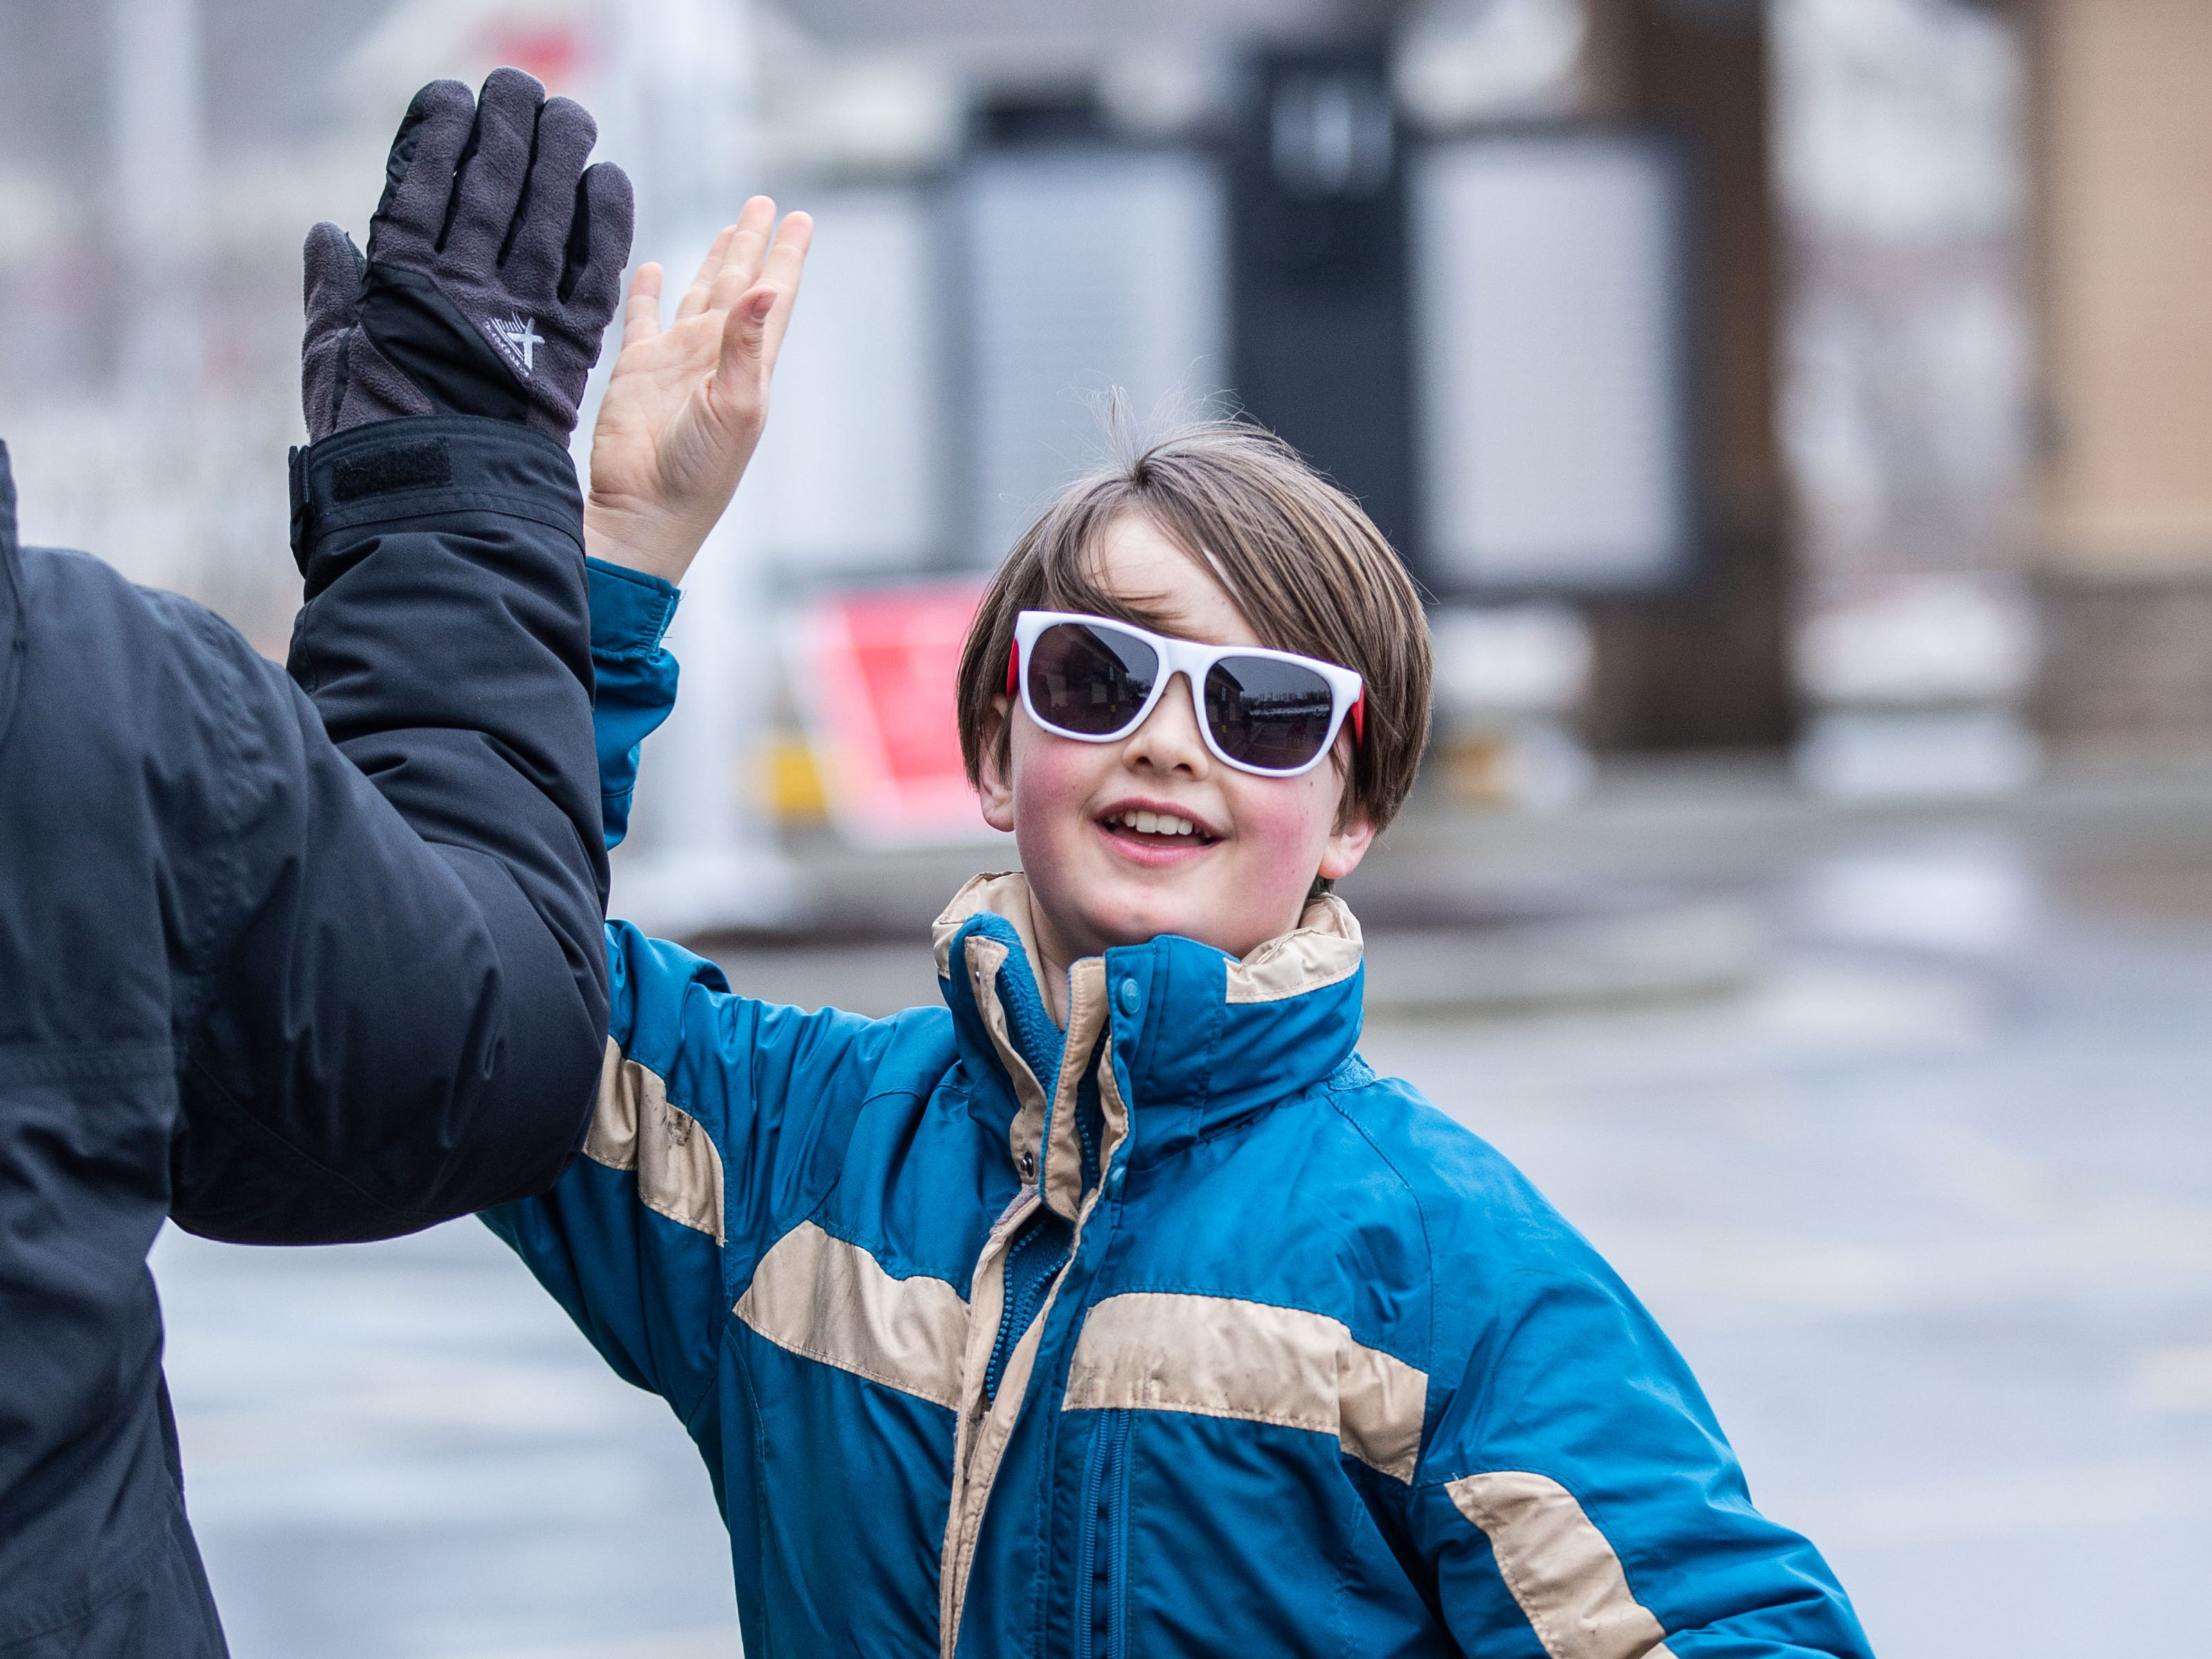 Gabe Borkenhagen, 11, of Waukesha gets a high five after winning a pair of sun glasses outside Pewaukee's new Chick-fil-A location at 1454 Capitol Drive on Wednesday, March 13, ahead of Thursday's grand opening. Chick-fil-A is holding The First 100 Camp Out contest which offers a year's worth of free Chick-fil-A to the first 100 participants.